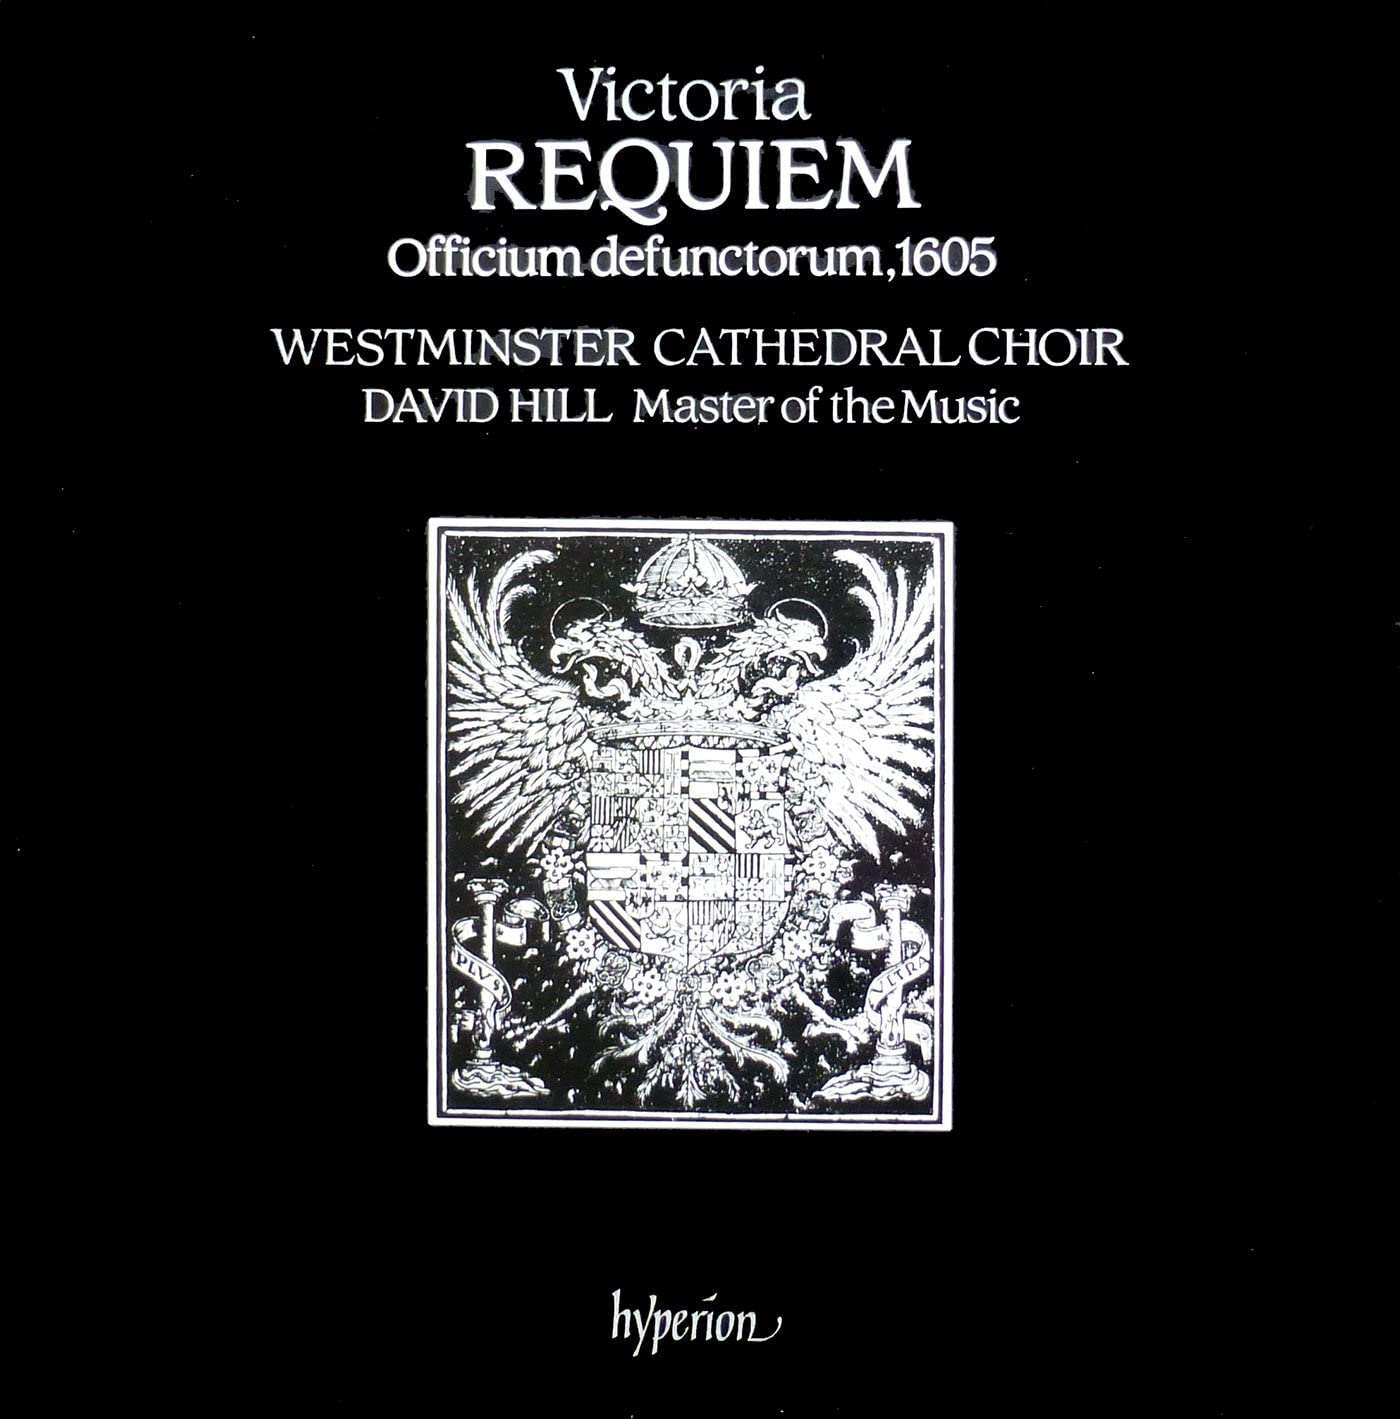 Hyperion A 66250 - Tomas Luis De Victoria - Requiem Messe - Officium  Defunctorum 1605) - Choir Of Westminster Cathedral London - David Hill -  Made In Germany, 1987 - (Disque vinyle